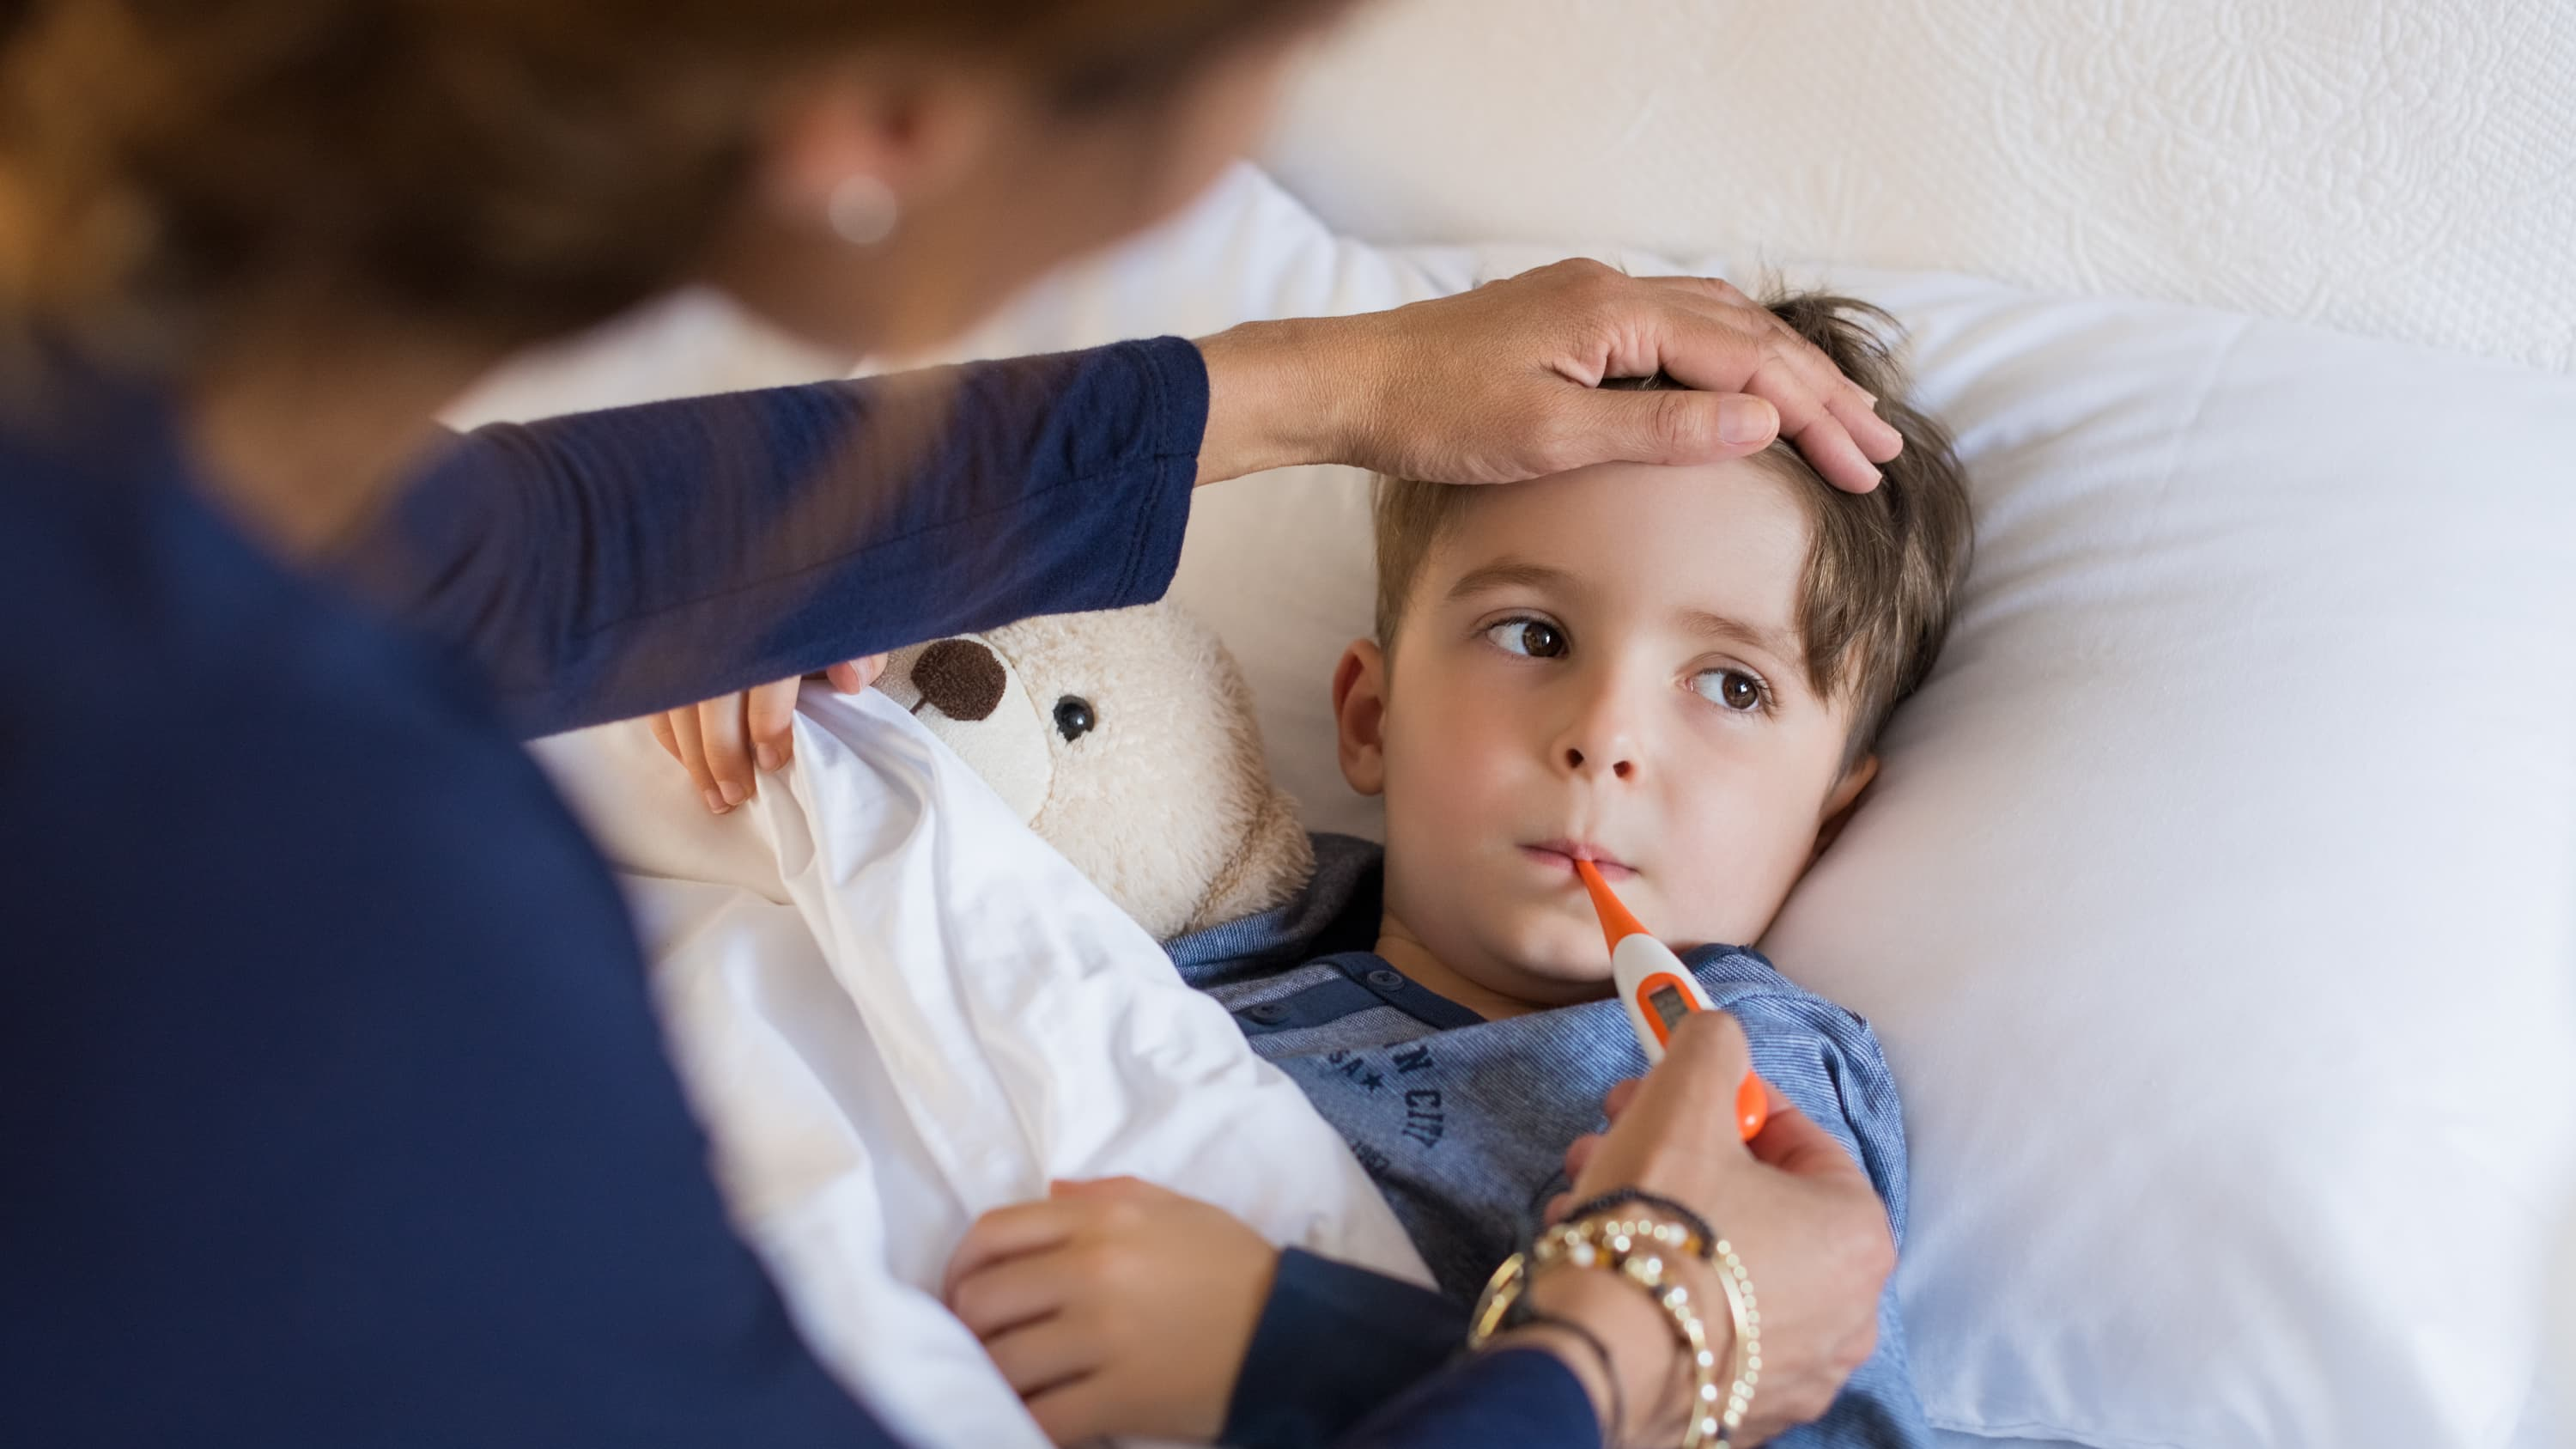 A boy suffering from possible sepsis.